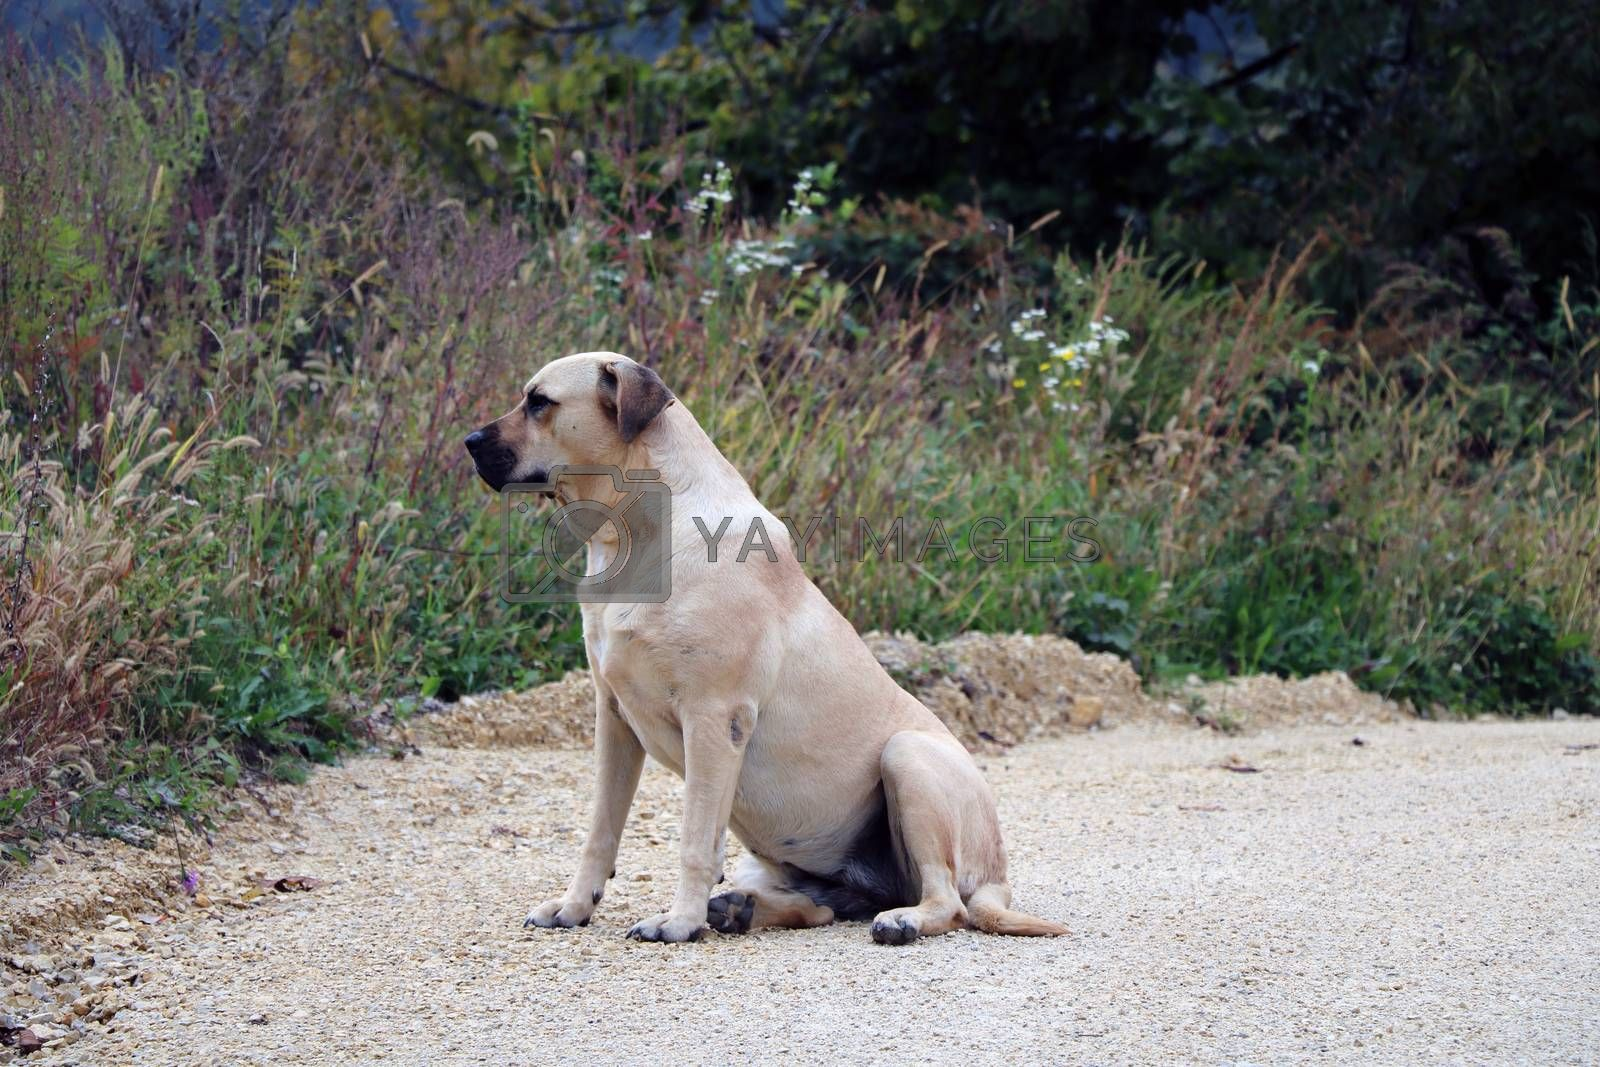 An adult dog labrador retriever is sitting on the road